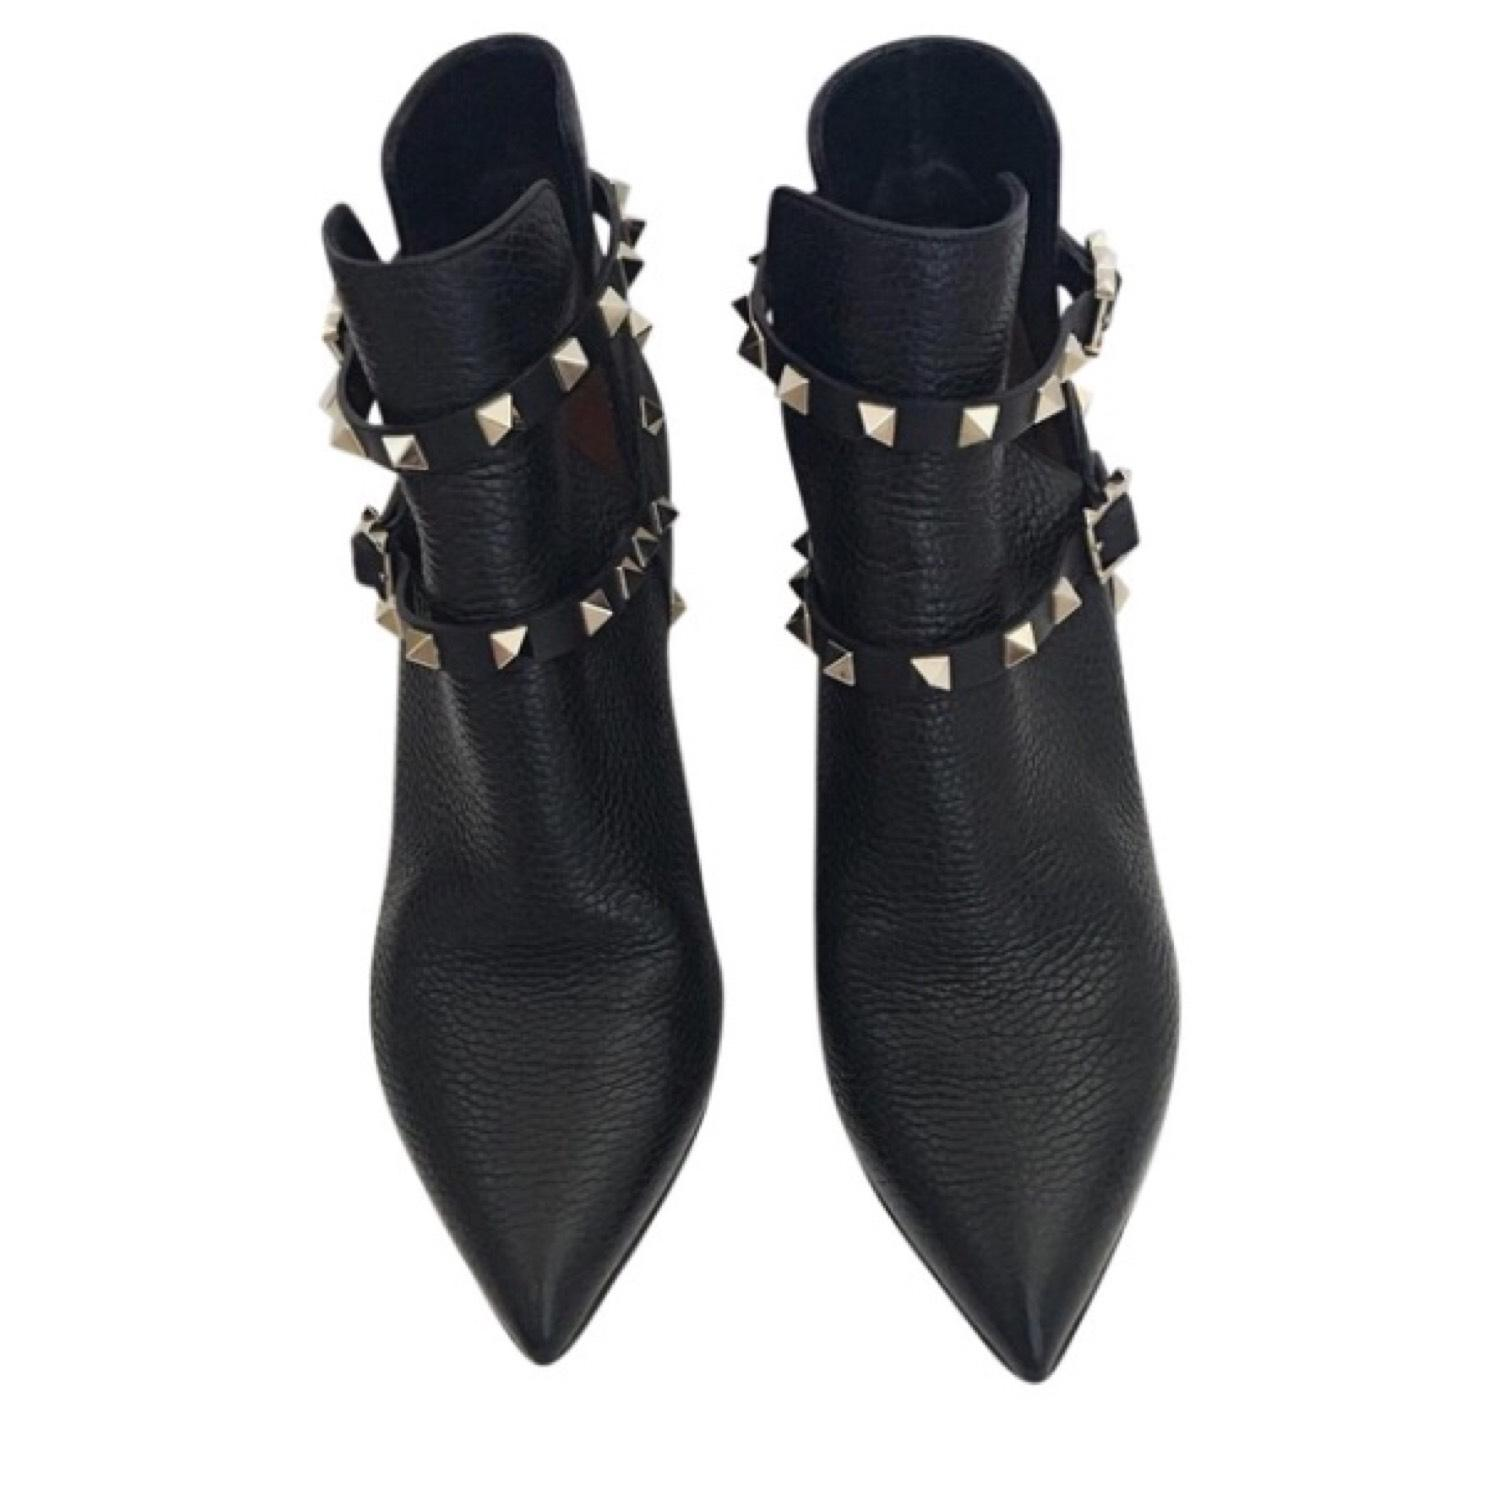 Valentino Rockstud Pointed Toe Boots/Booties Size US 5 Regular (M, B)